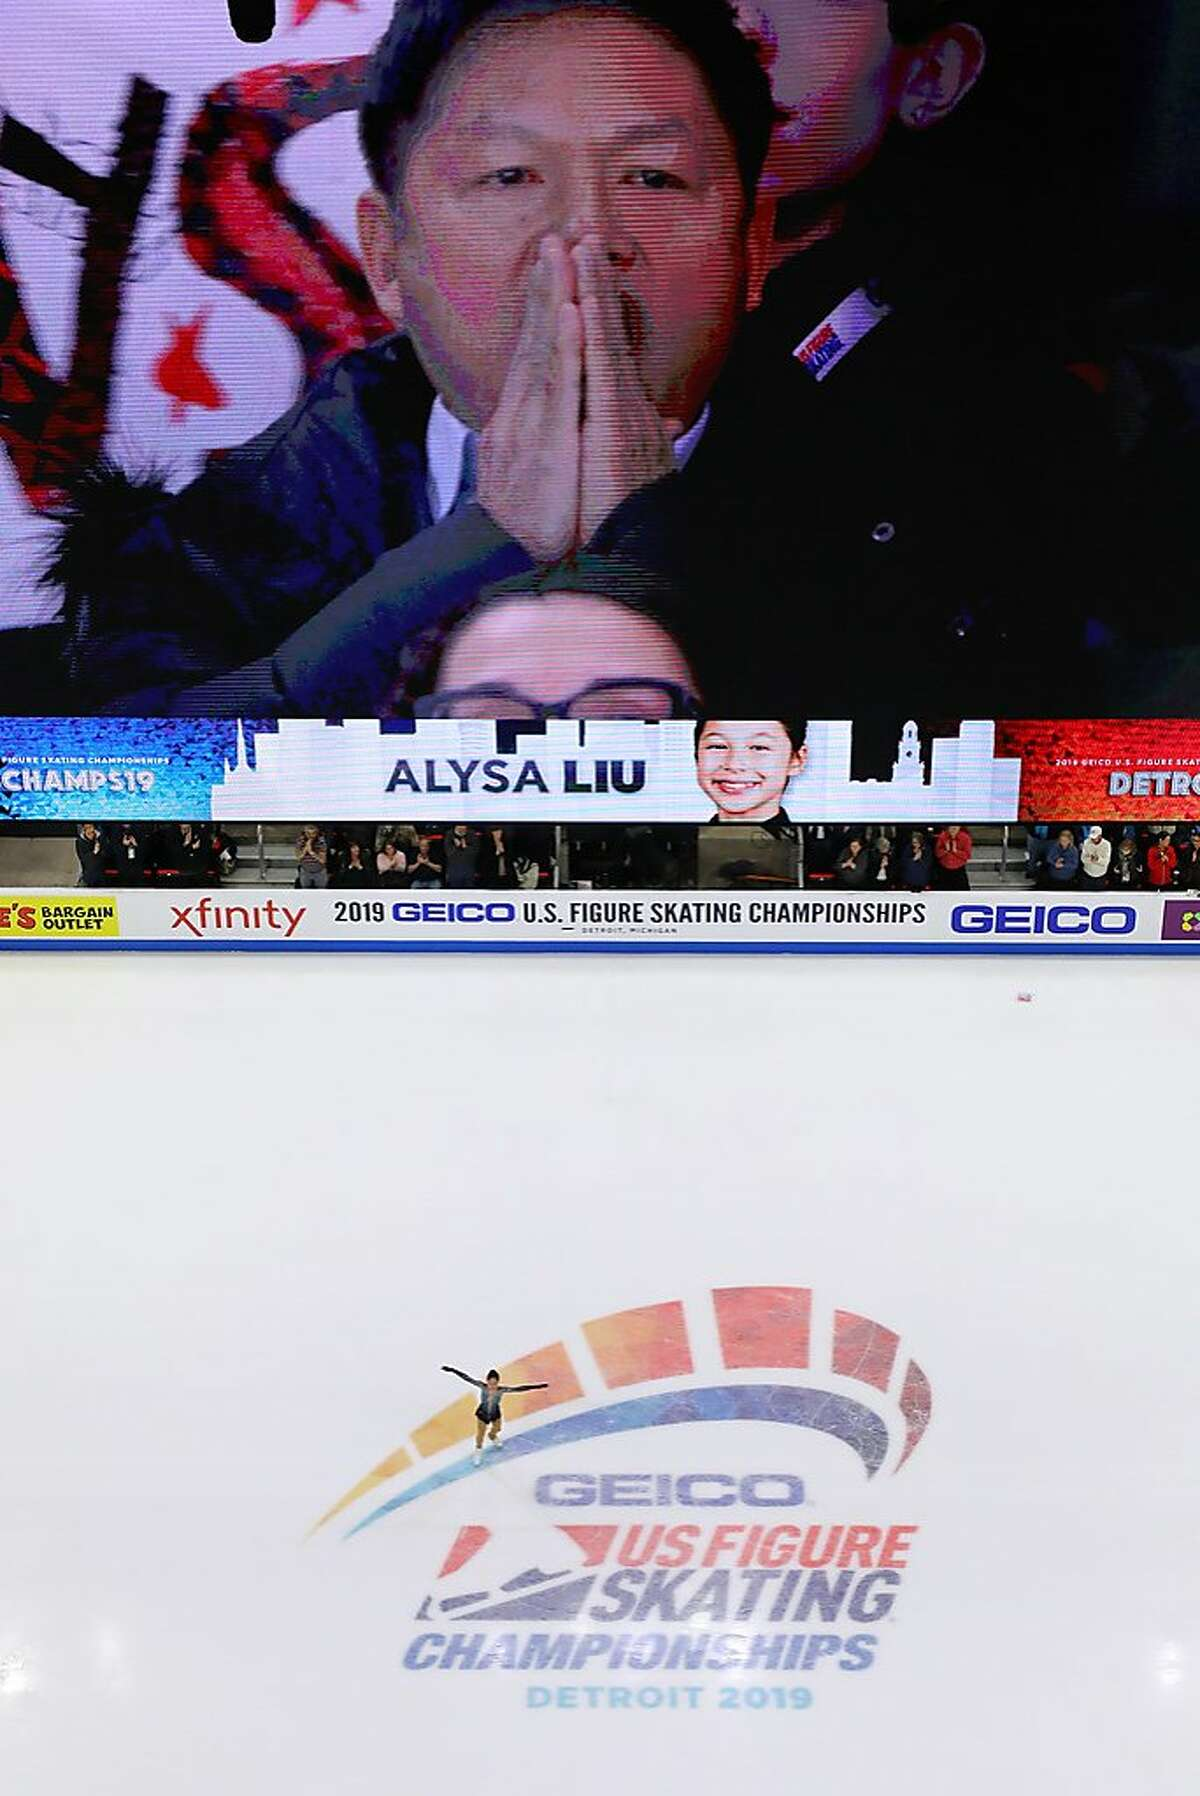 DETROIT, MICHIGAN - JANUARY 25: Alysa Liu finishes her Championship Ladies Free Skate while her father Arthur Liu reacts on the jumbotron above the ice during the 2019 U.S. Figure Skating Championships at Little Caesars Arena on January 25, 2019 in Detroit, Michigan. (Photo by Gregory Shamus/Getty Images)